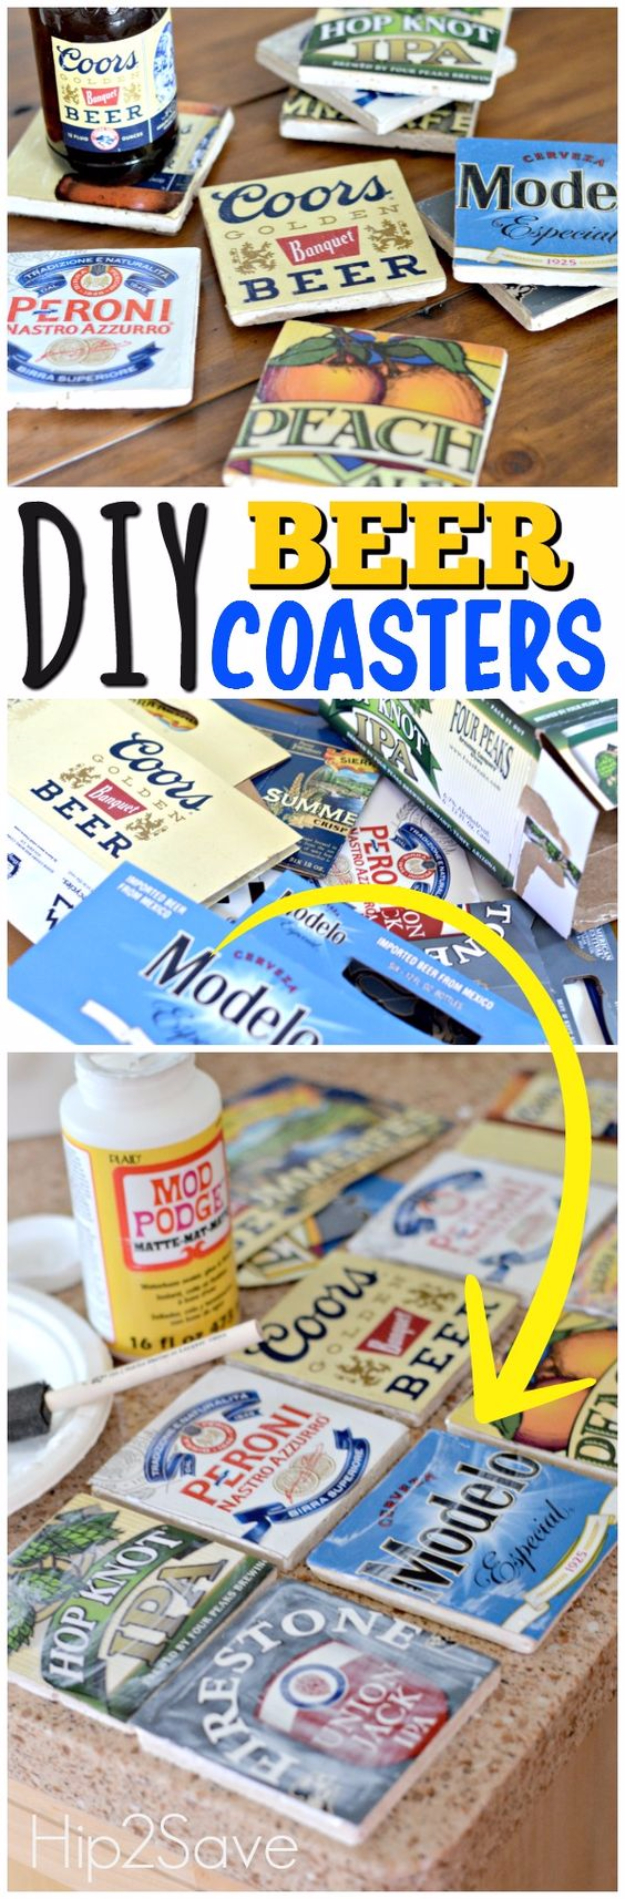 DIY Coasters - DIY Beer Coasters - Best Quick DIY Gifts and Home Decor - Easy Step by Step Tutorials for DIY Coaster Projects - Mod Podge, Tile, Painted, Photo and Sewing Projects - Cool Christmas Presents for Him and Her - DIY Projects and Crafts by DIY Joy